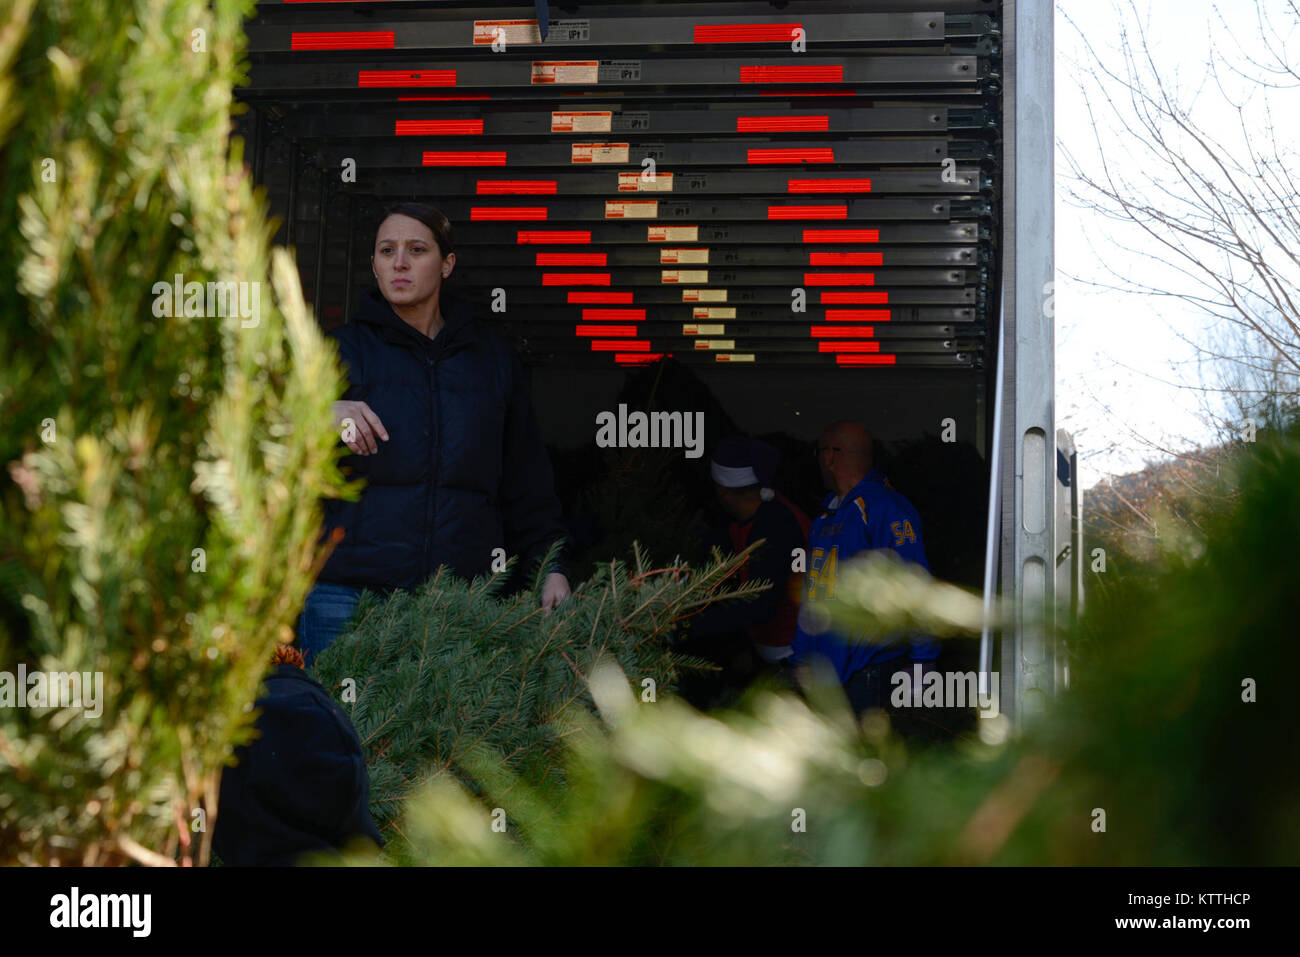 More than a dozen Airmen assigned to the 105th Airlift Wing volunteered their time to help load Christmas trees Stock Photo